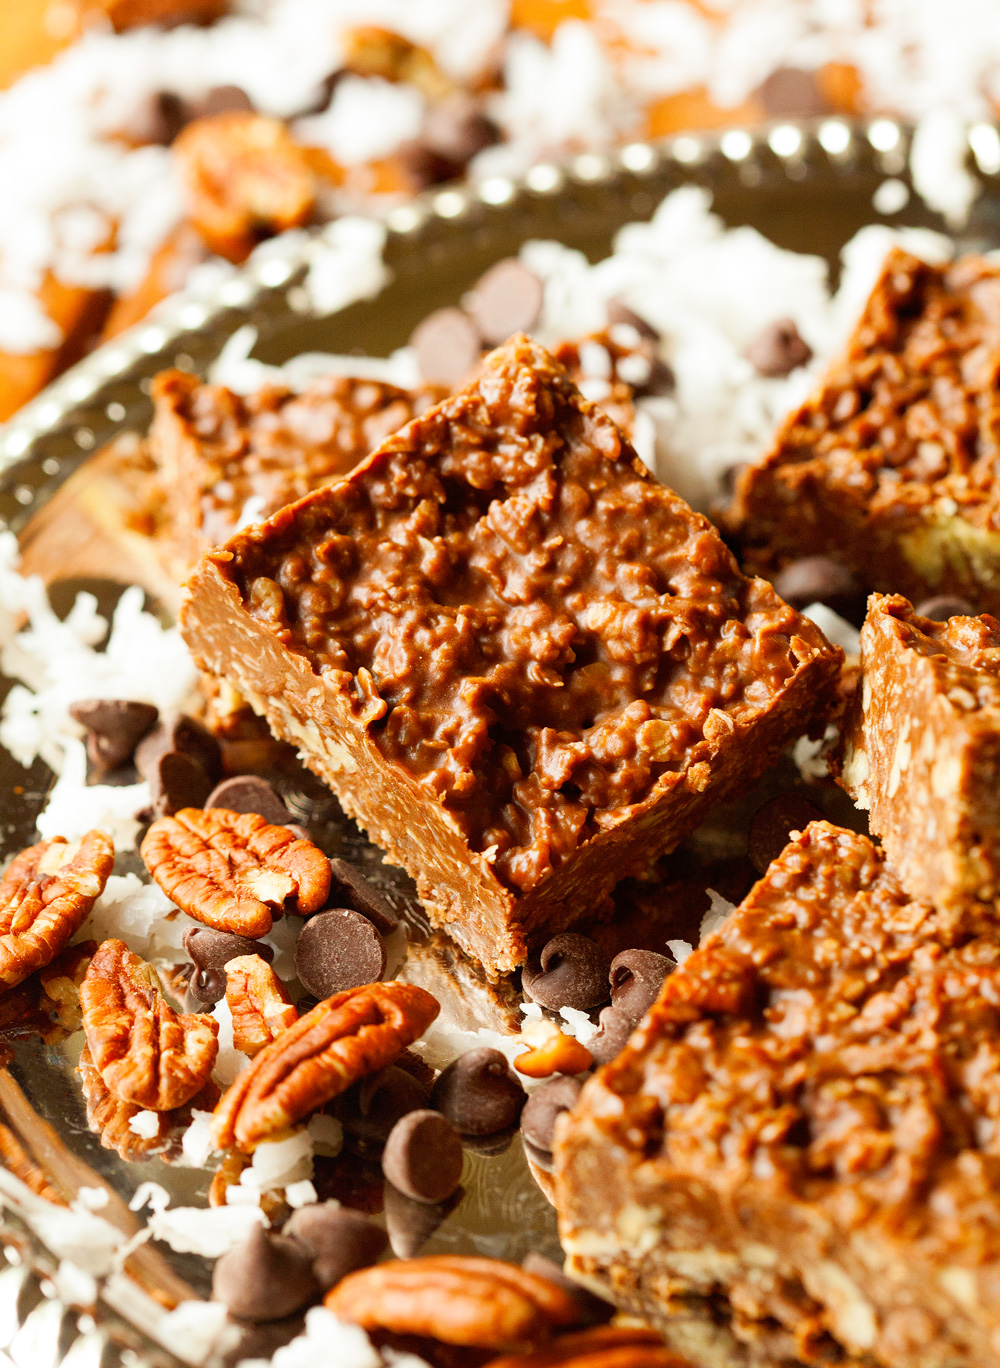 No-Bake Chocolate Peanut Butter Coconut Bars